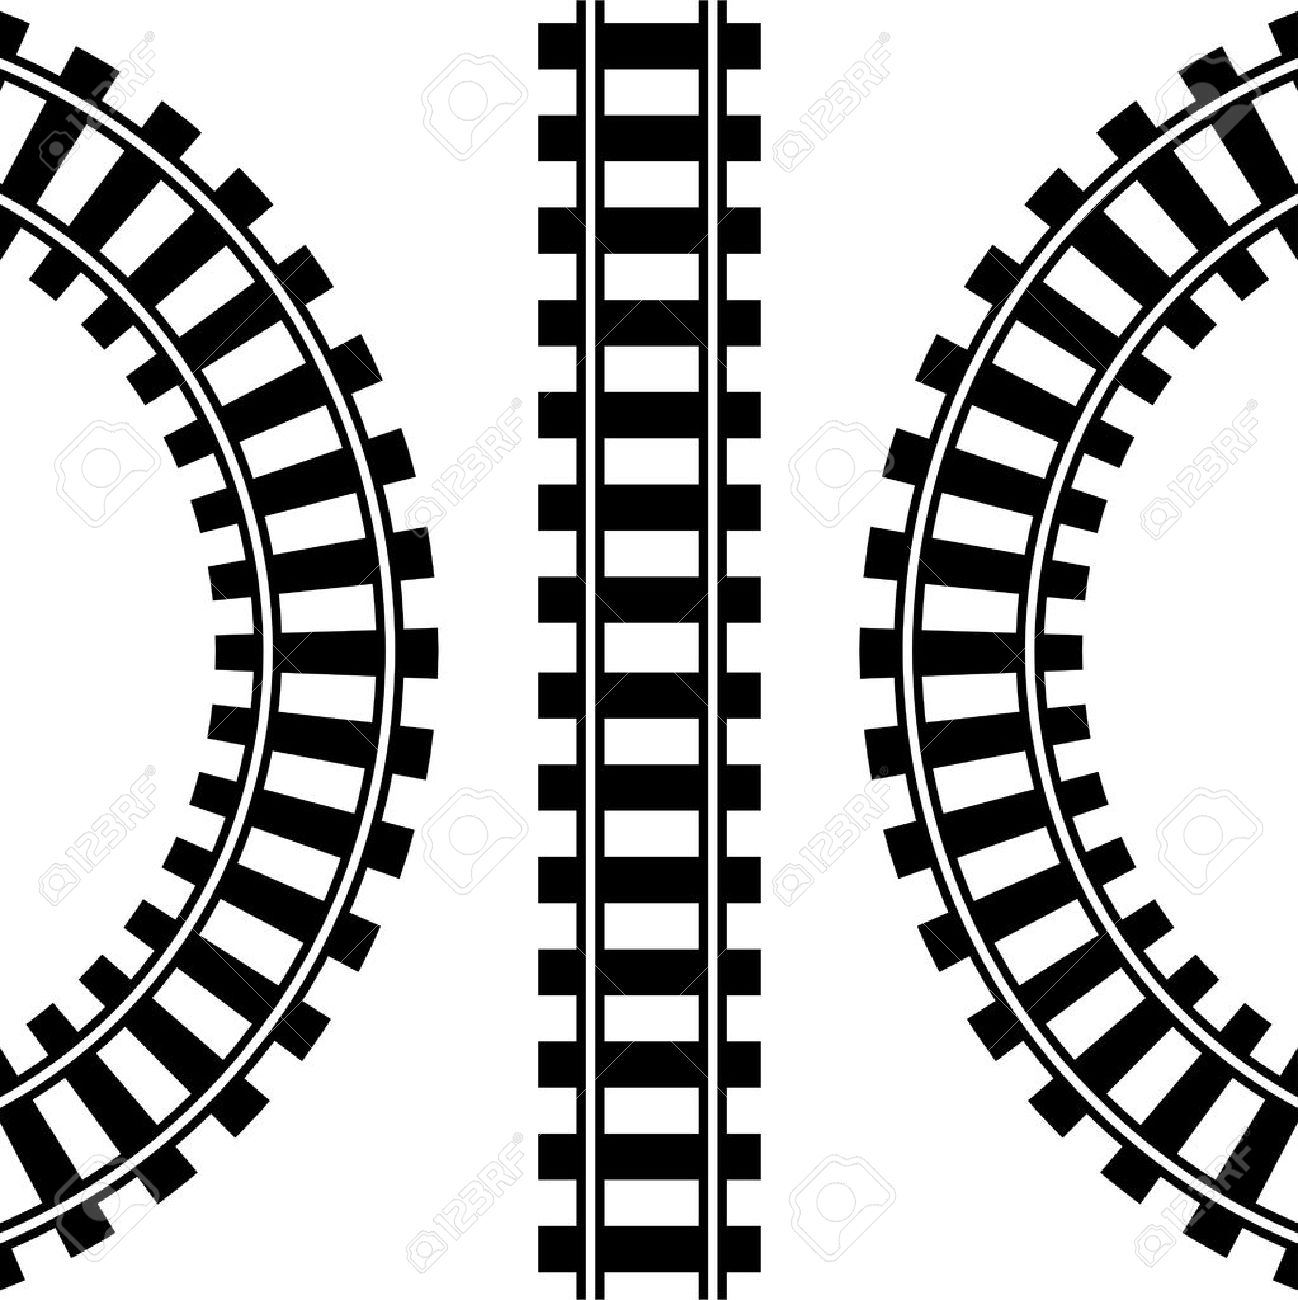 Train Tracks Royalty Free Cliparts, Vectors, And Stock.